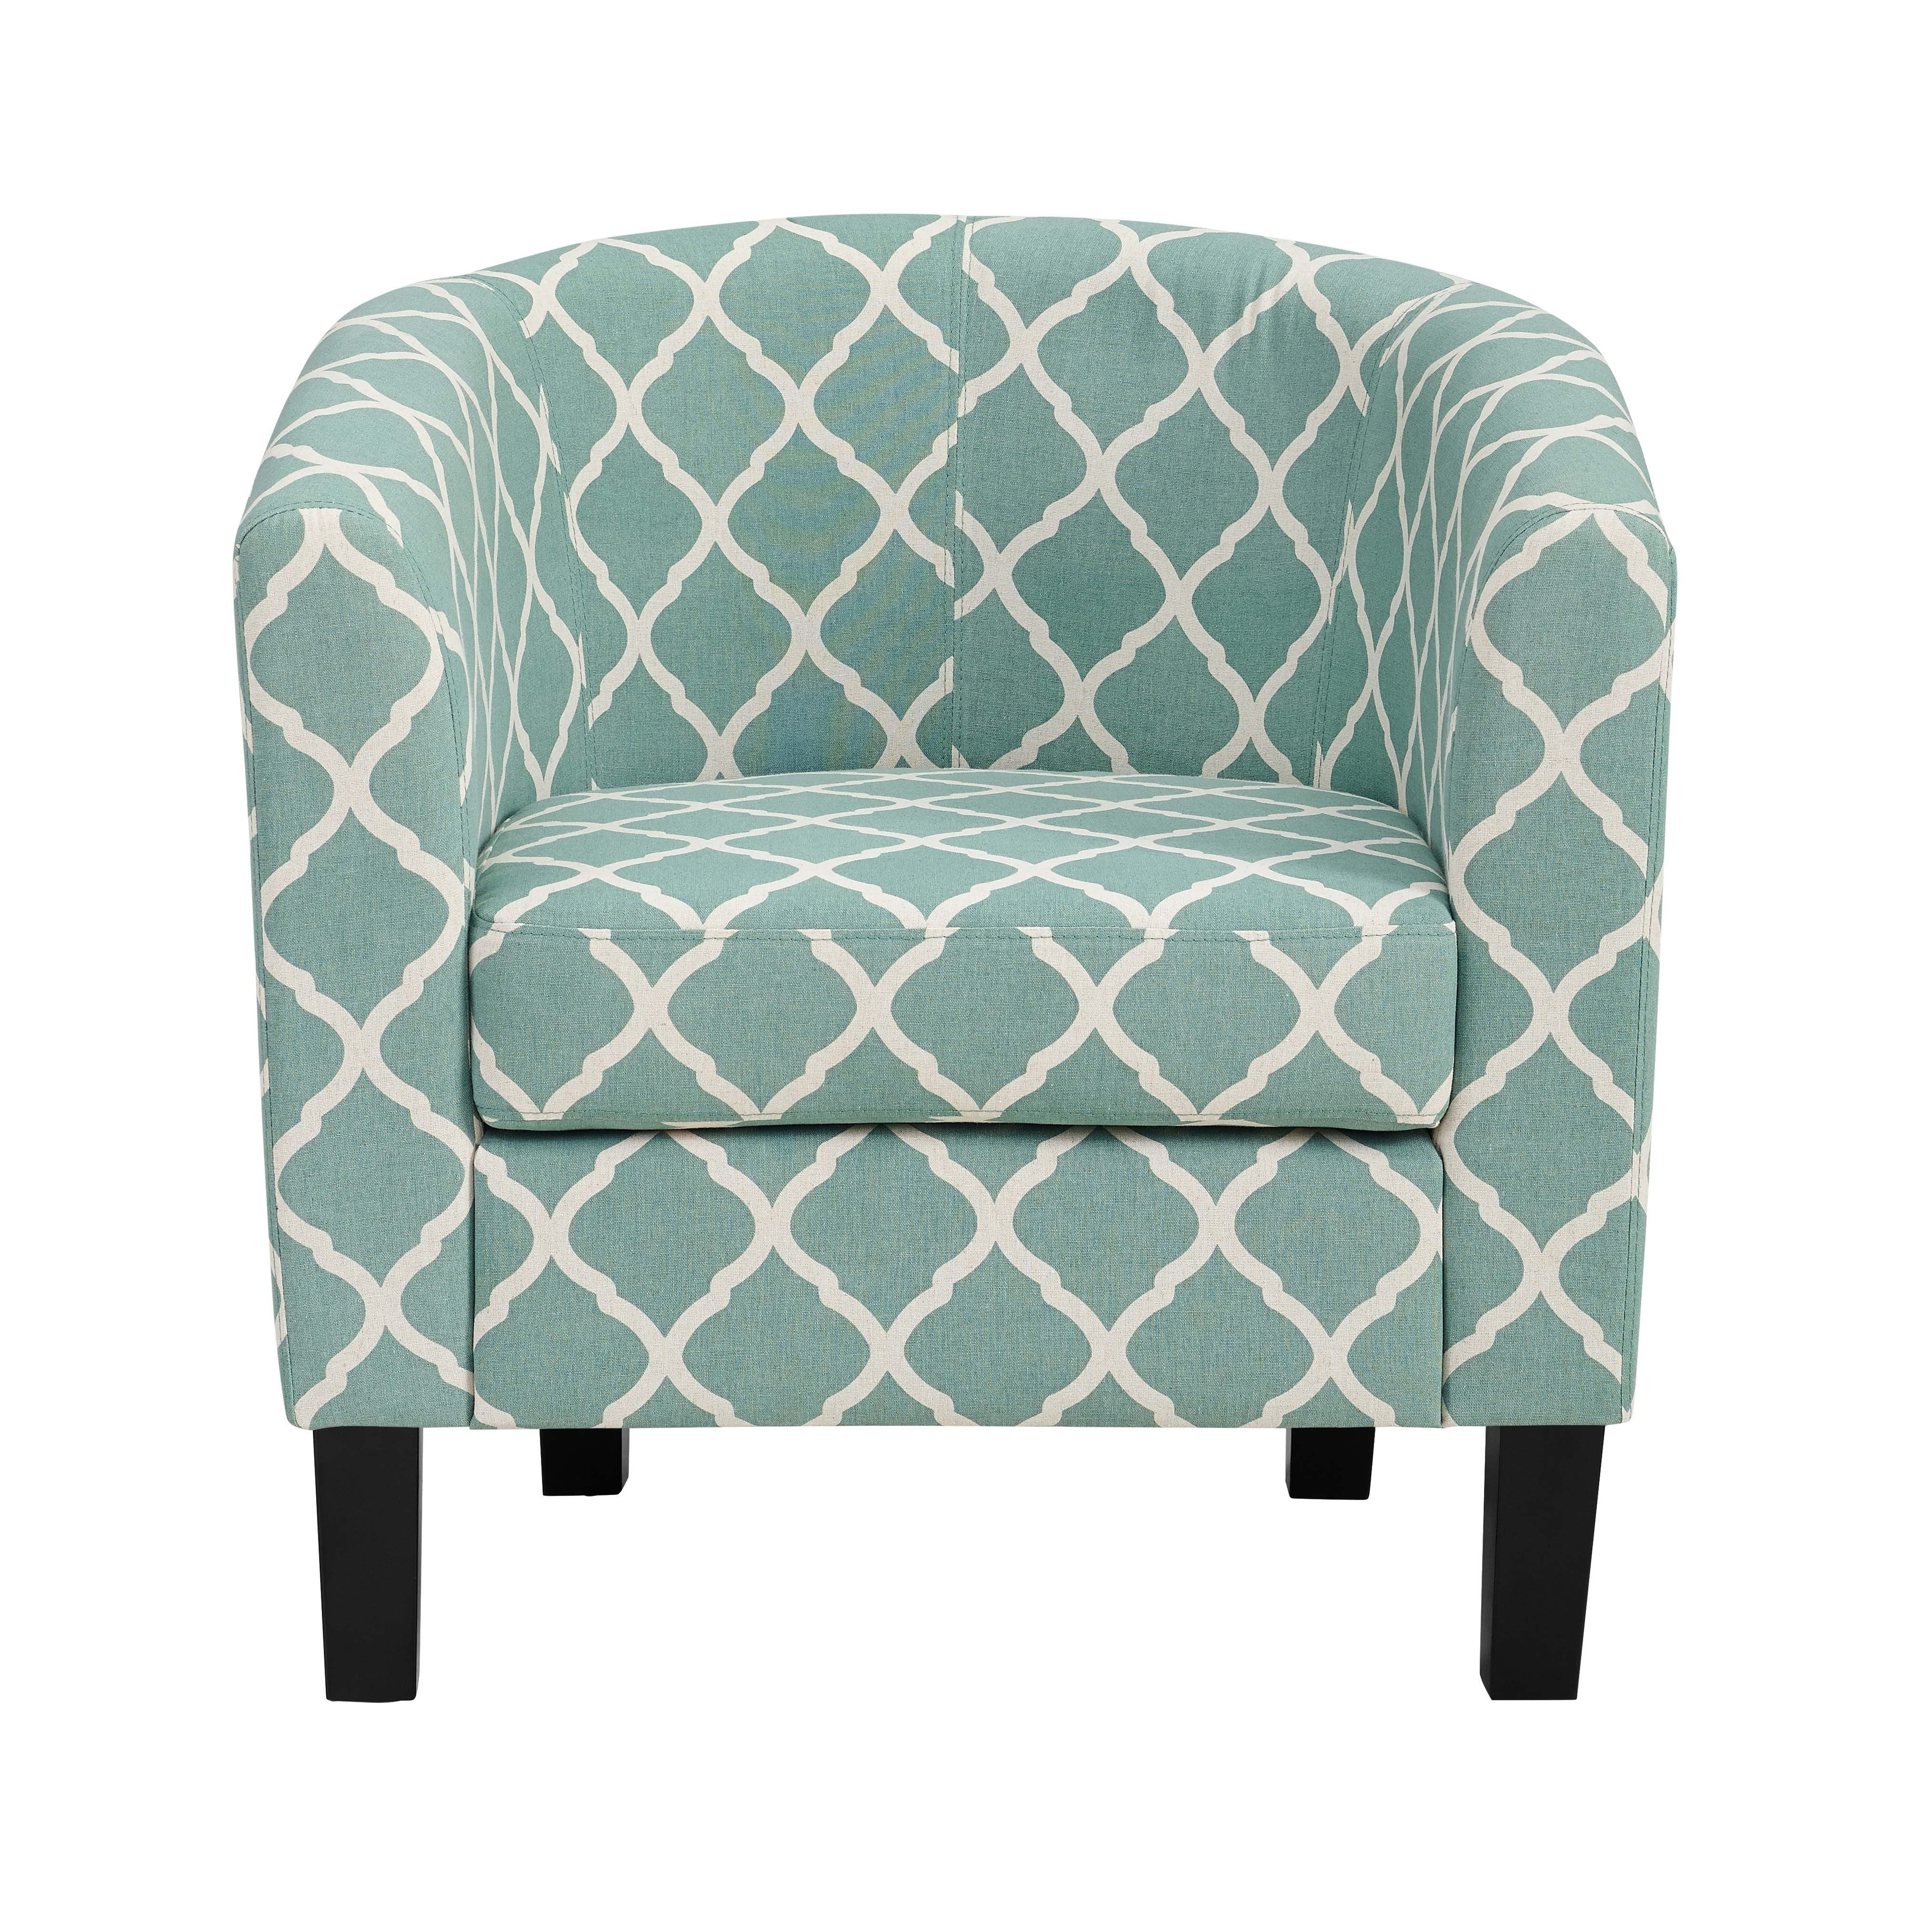 Shop Porch & Den Tub Chair - On Sale - Free Shipping Today ...